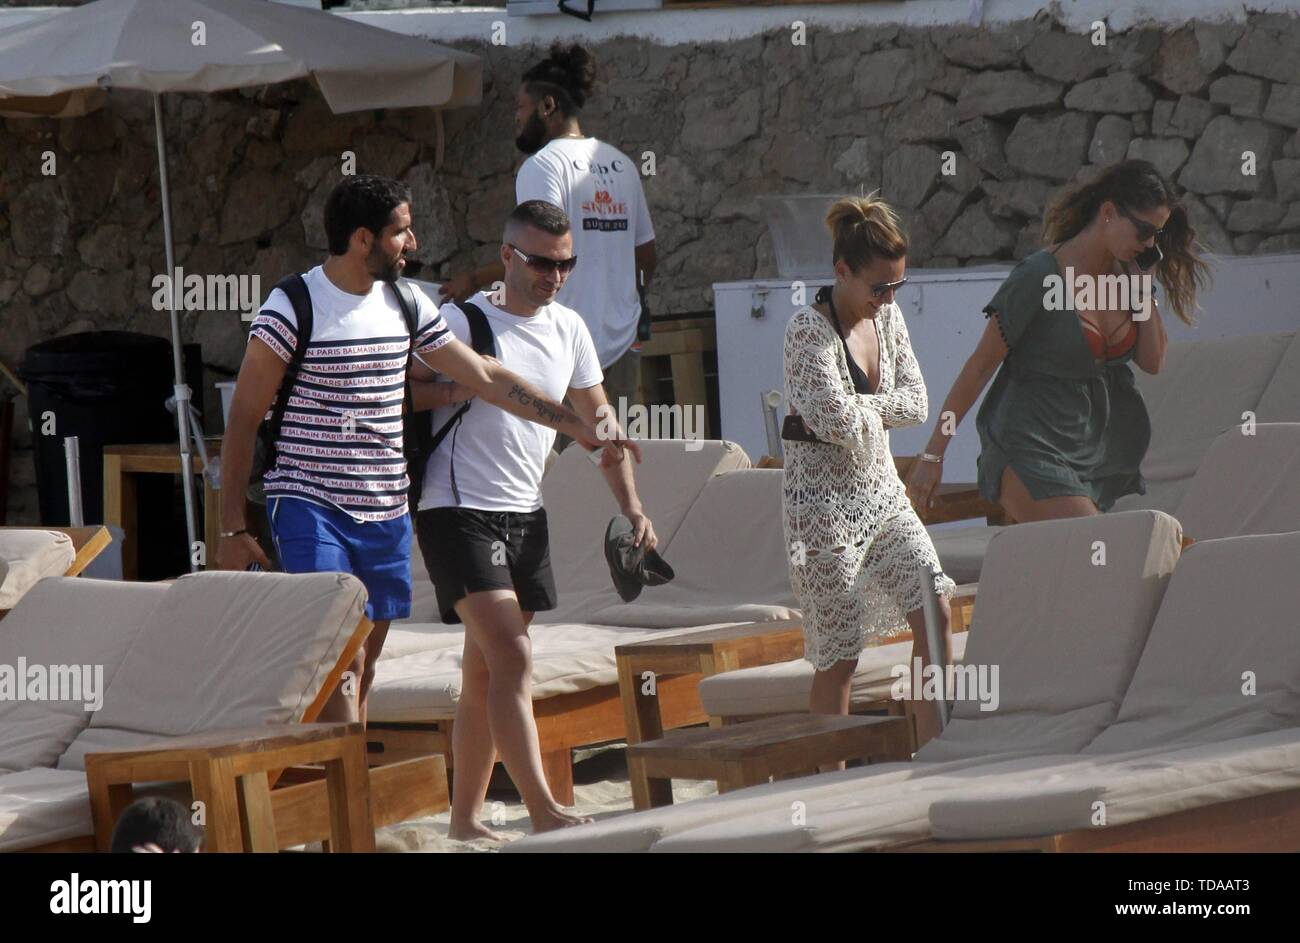 On Vacation For Few Days >> Ibiza Spain 14th June 2019 Atletico De Bilbao Footballer Raul